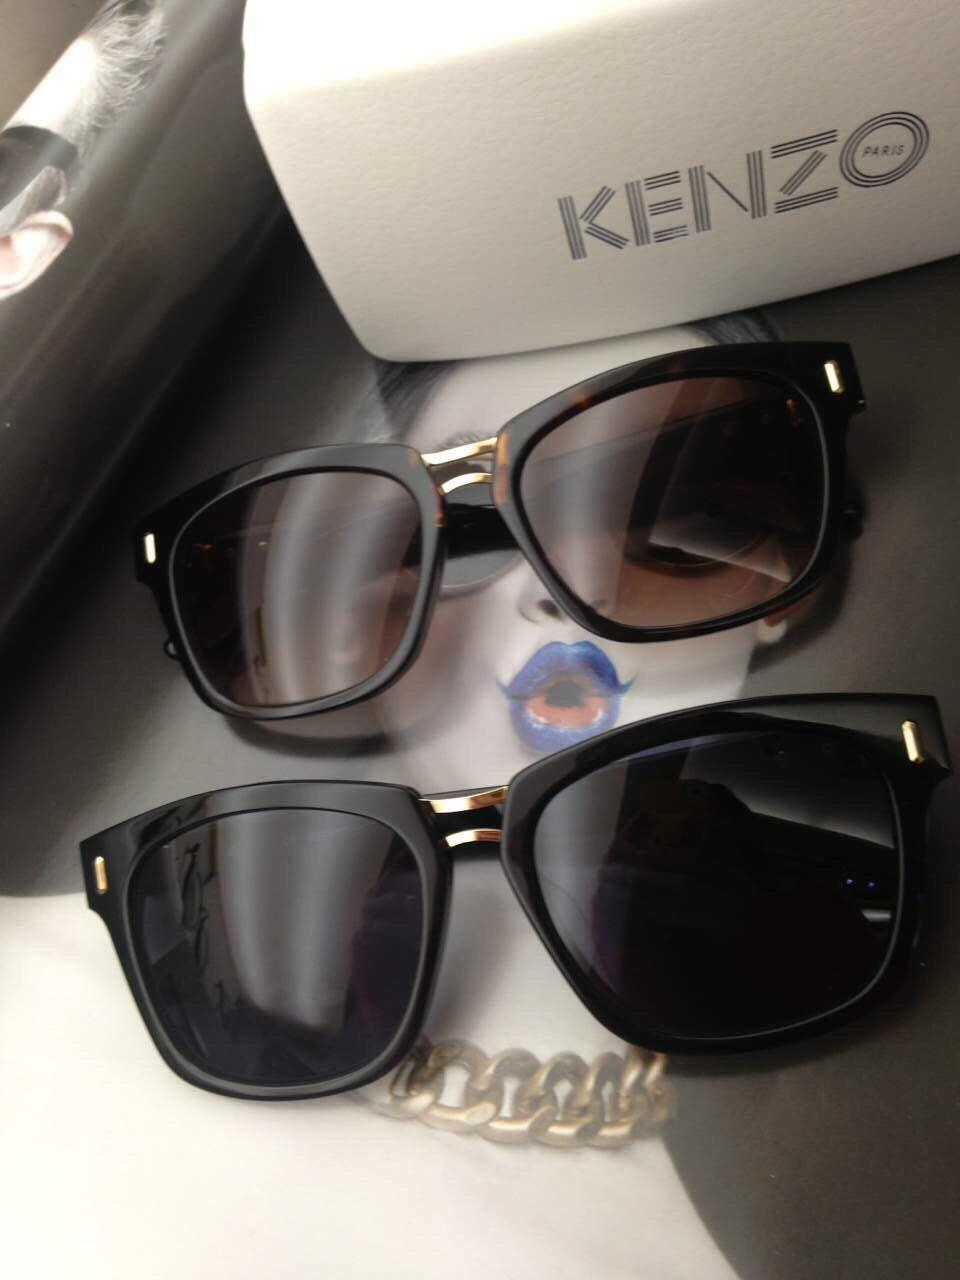 Up to 76% Off Kenzo Sunglasses @ Saks Off 5th